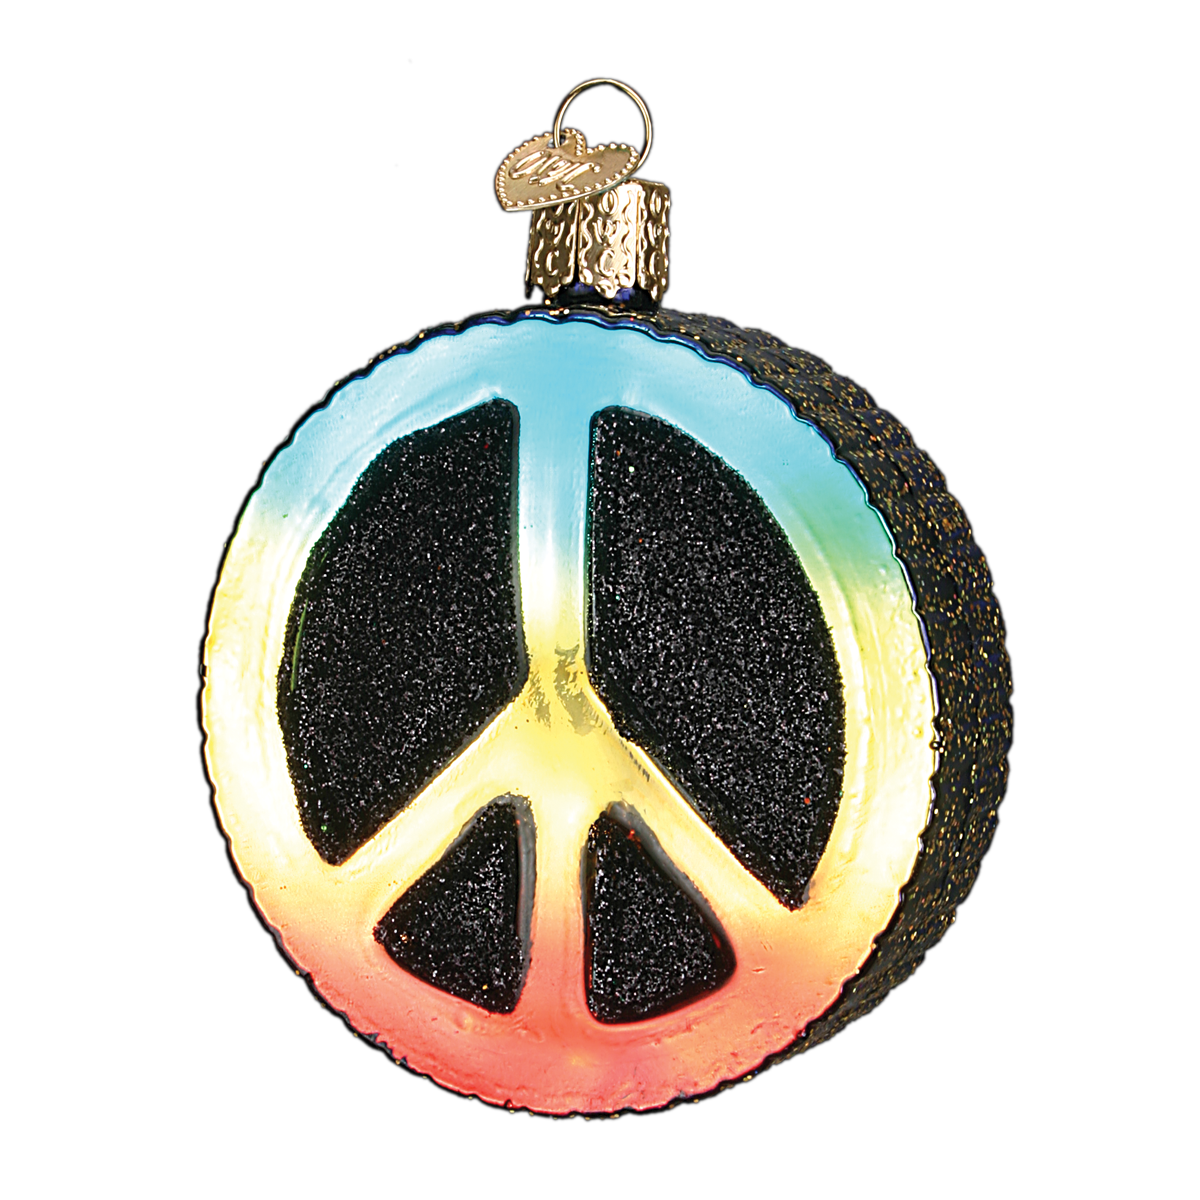 Peace sign item 36152 by old world christmas the peace symbol peace sign item 36152 by old world christmas the peace symbol was biocorpaavc Choice Image